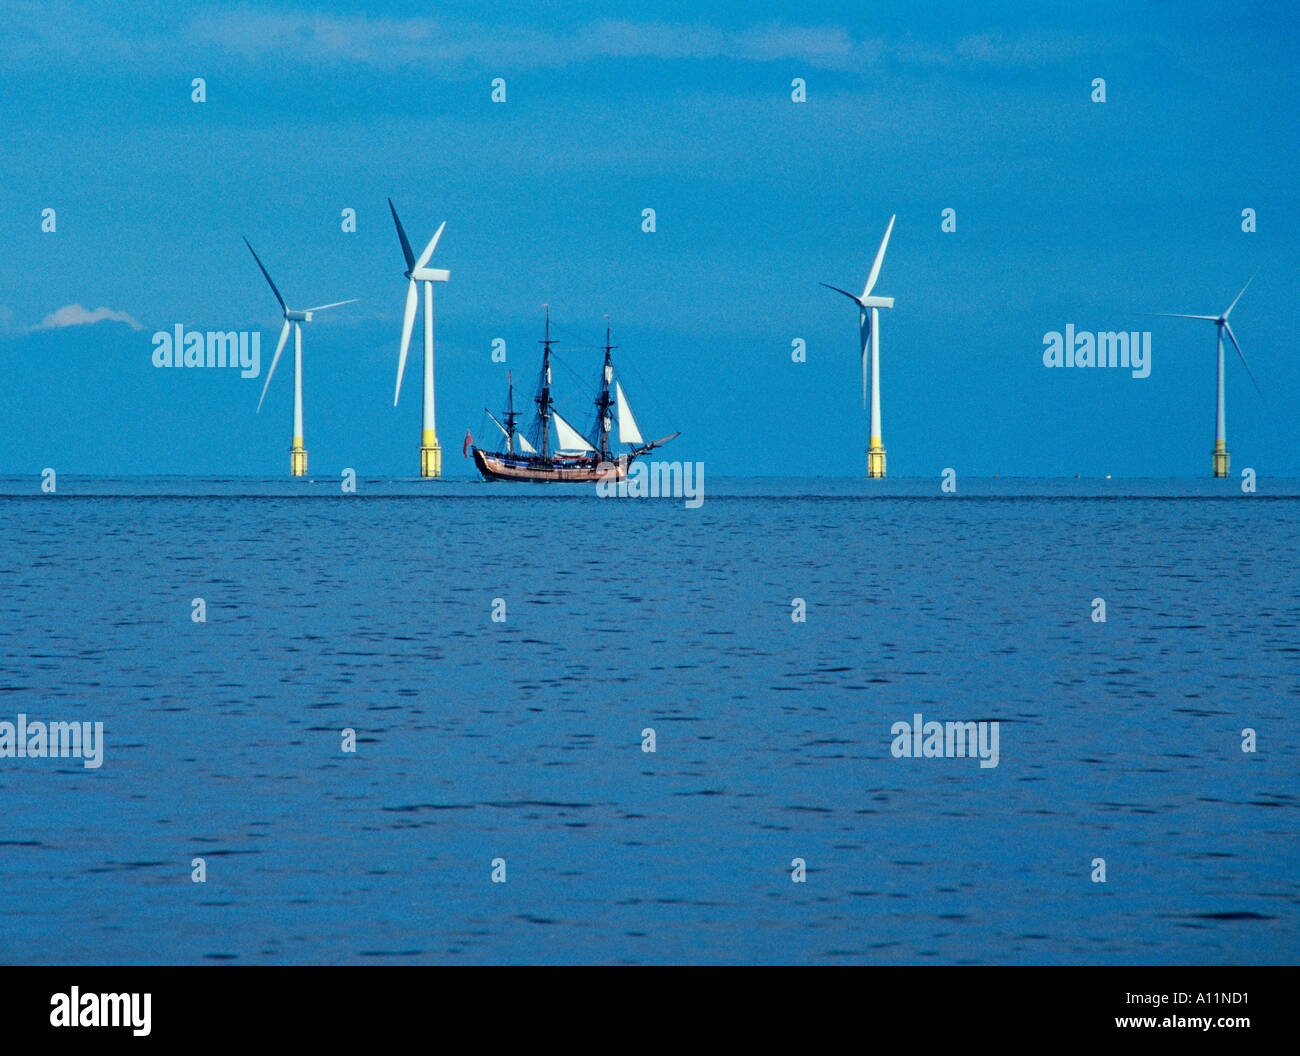 17th Century sailing ship sails past 21st century offshore wind farm - Stock Image